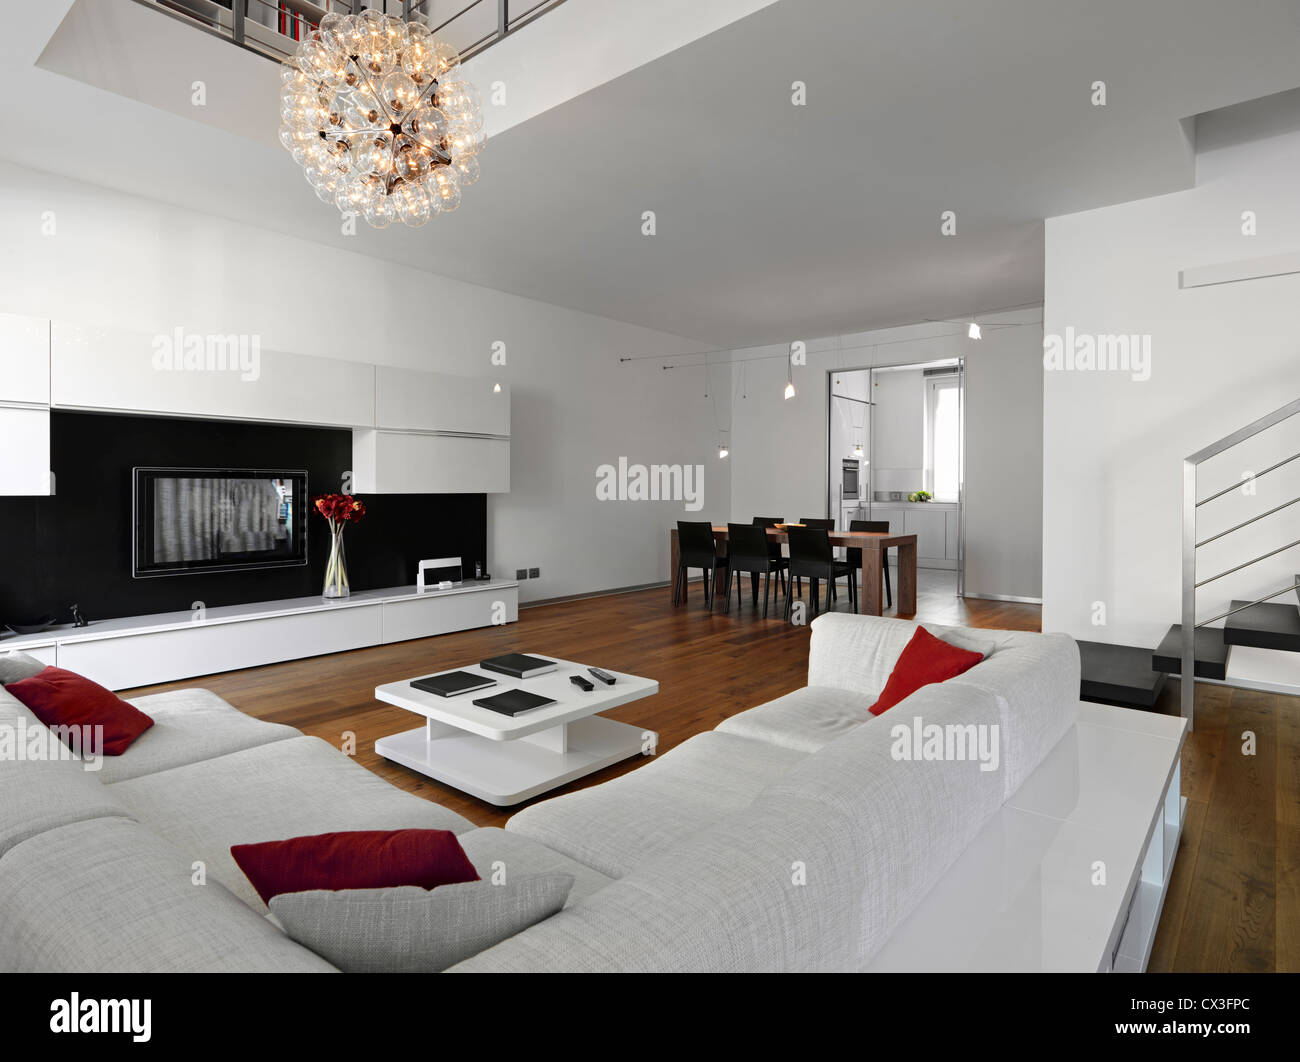 Modern Living Room Overlooking On Dining Table And Kitchen With Wood Floor